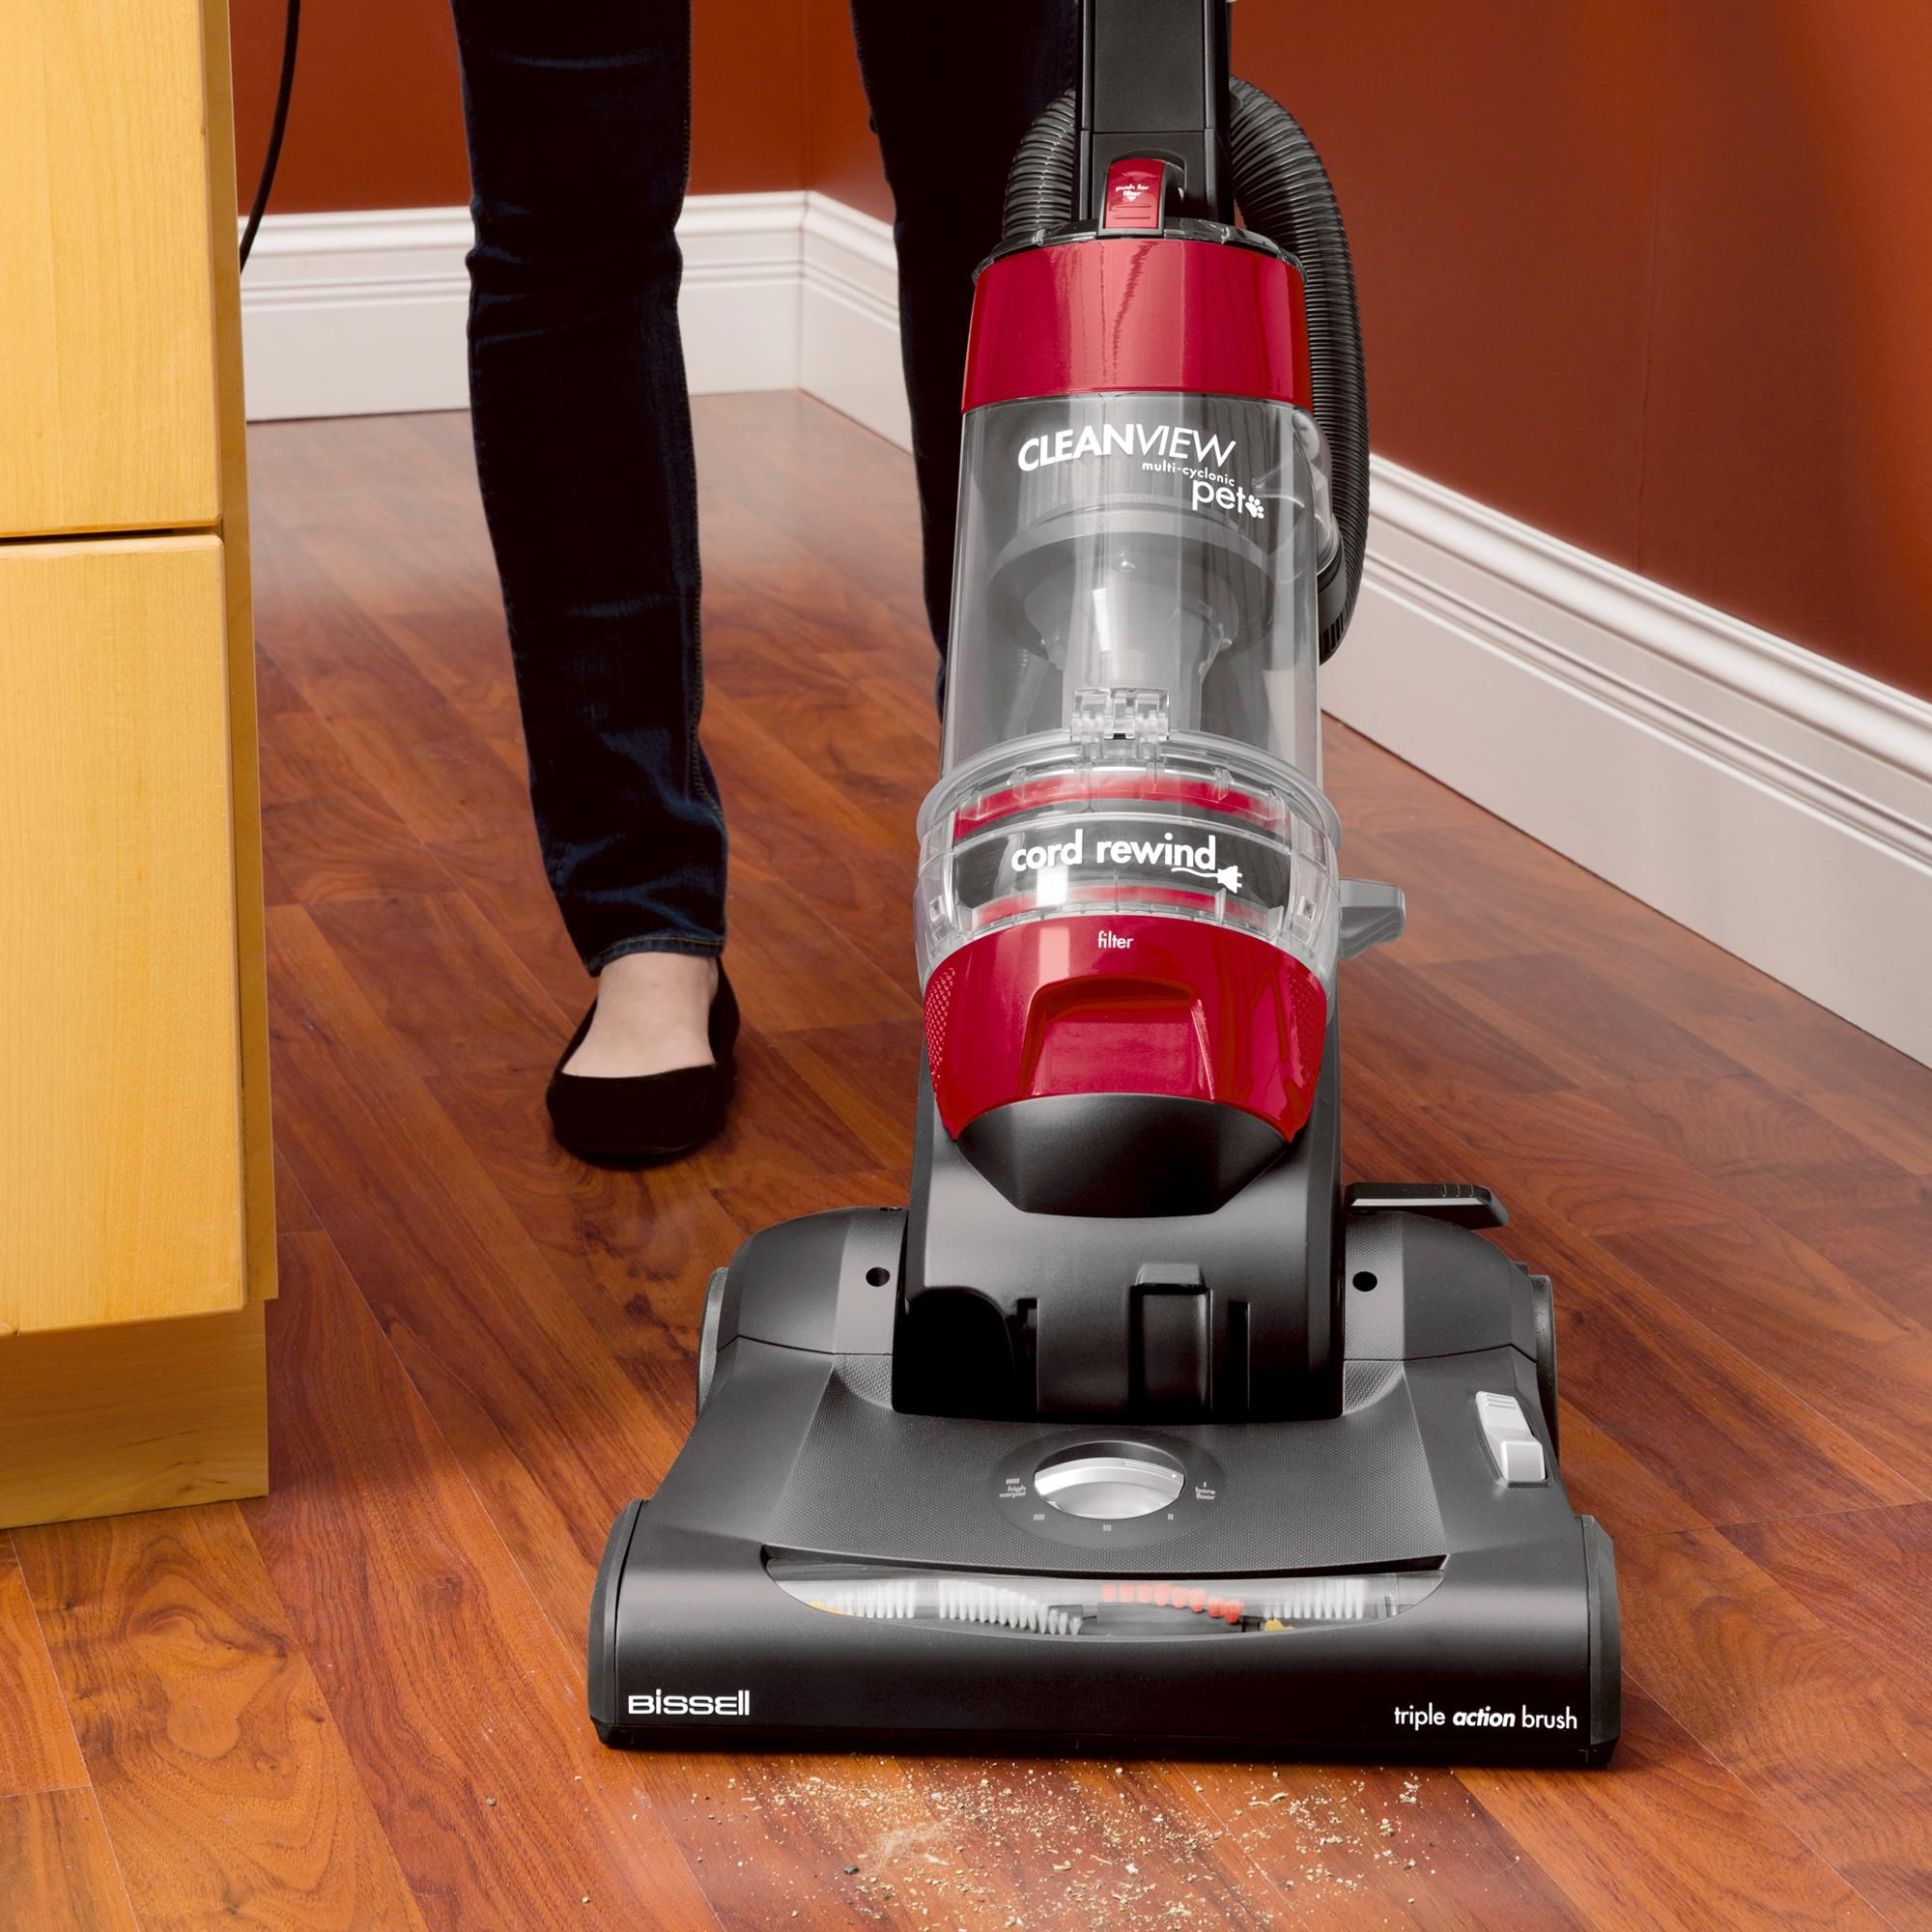 Bissell cleanview complete pet rewind bagless